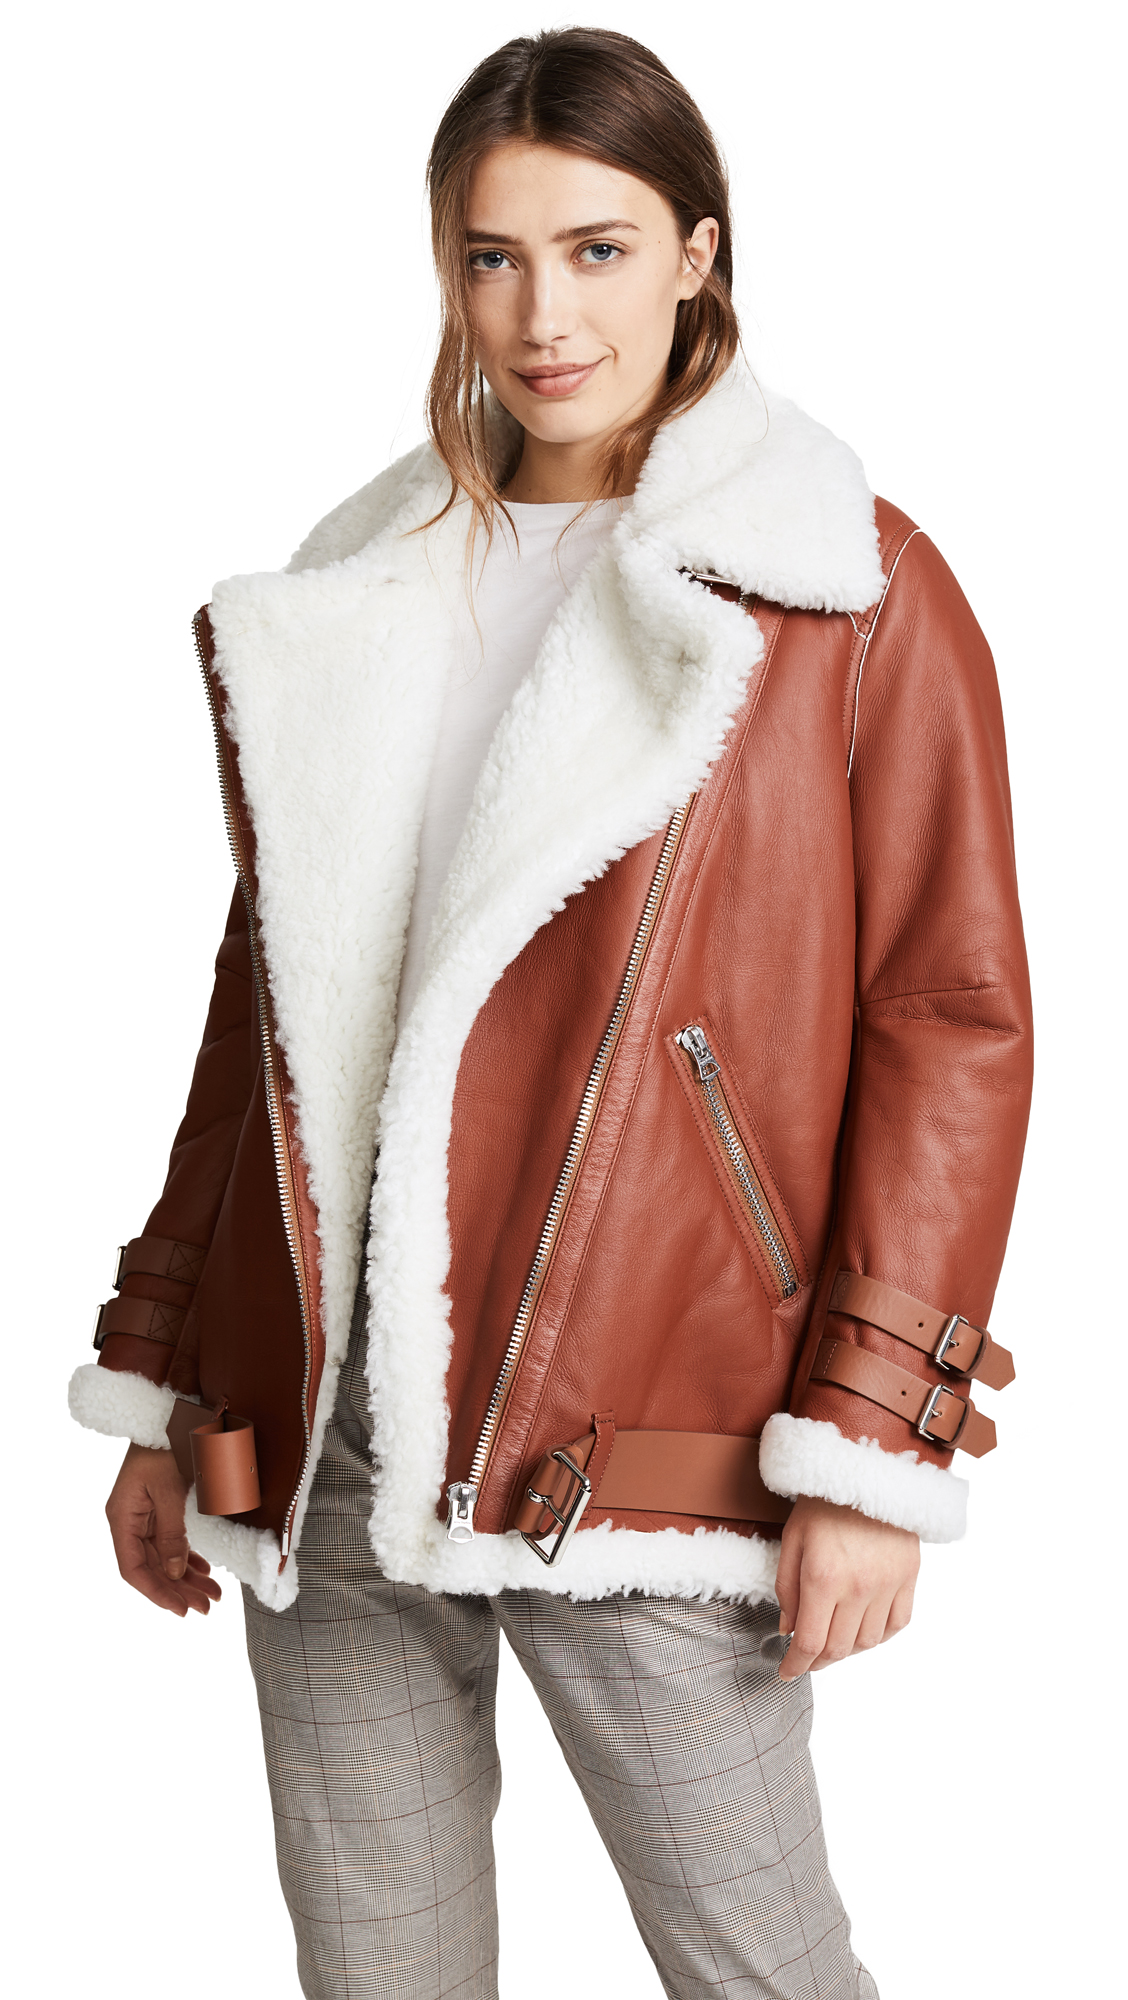 Acne Studios Velocite Shearling Moto Jacket - Nut Brown/White